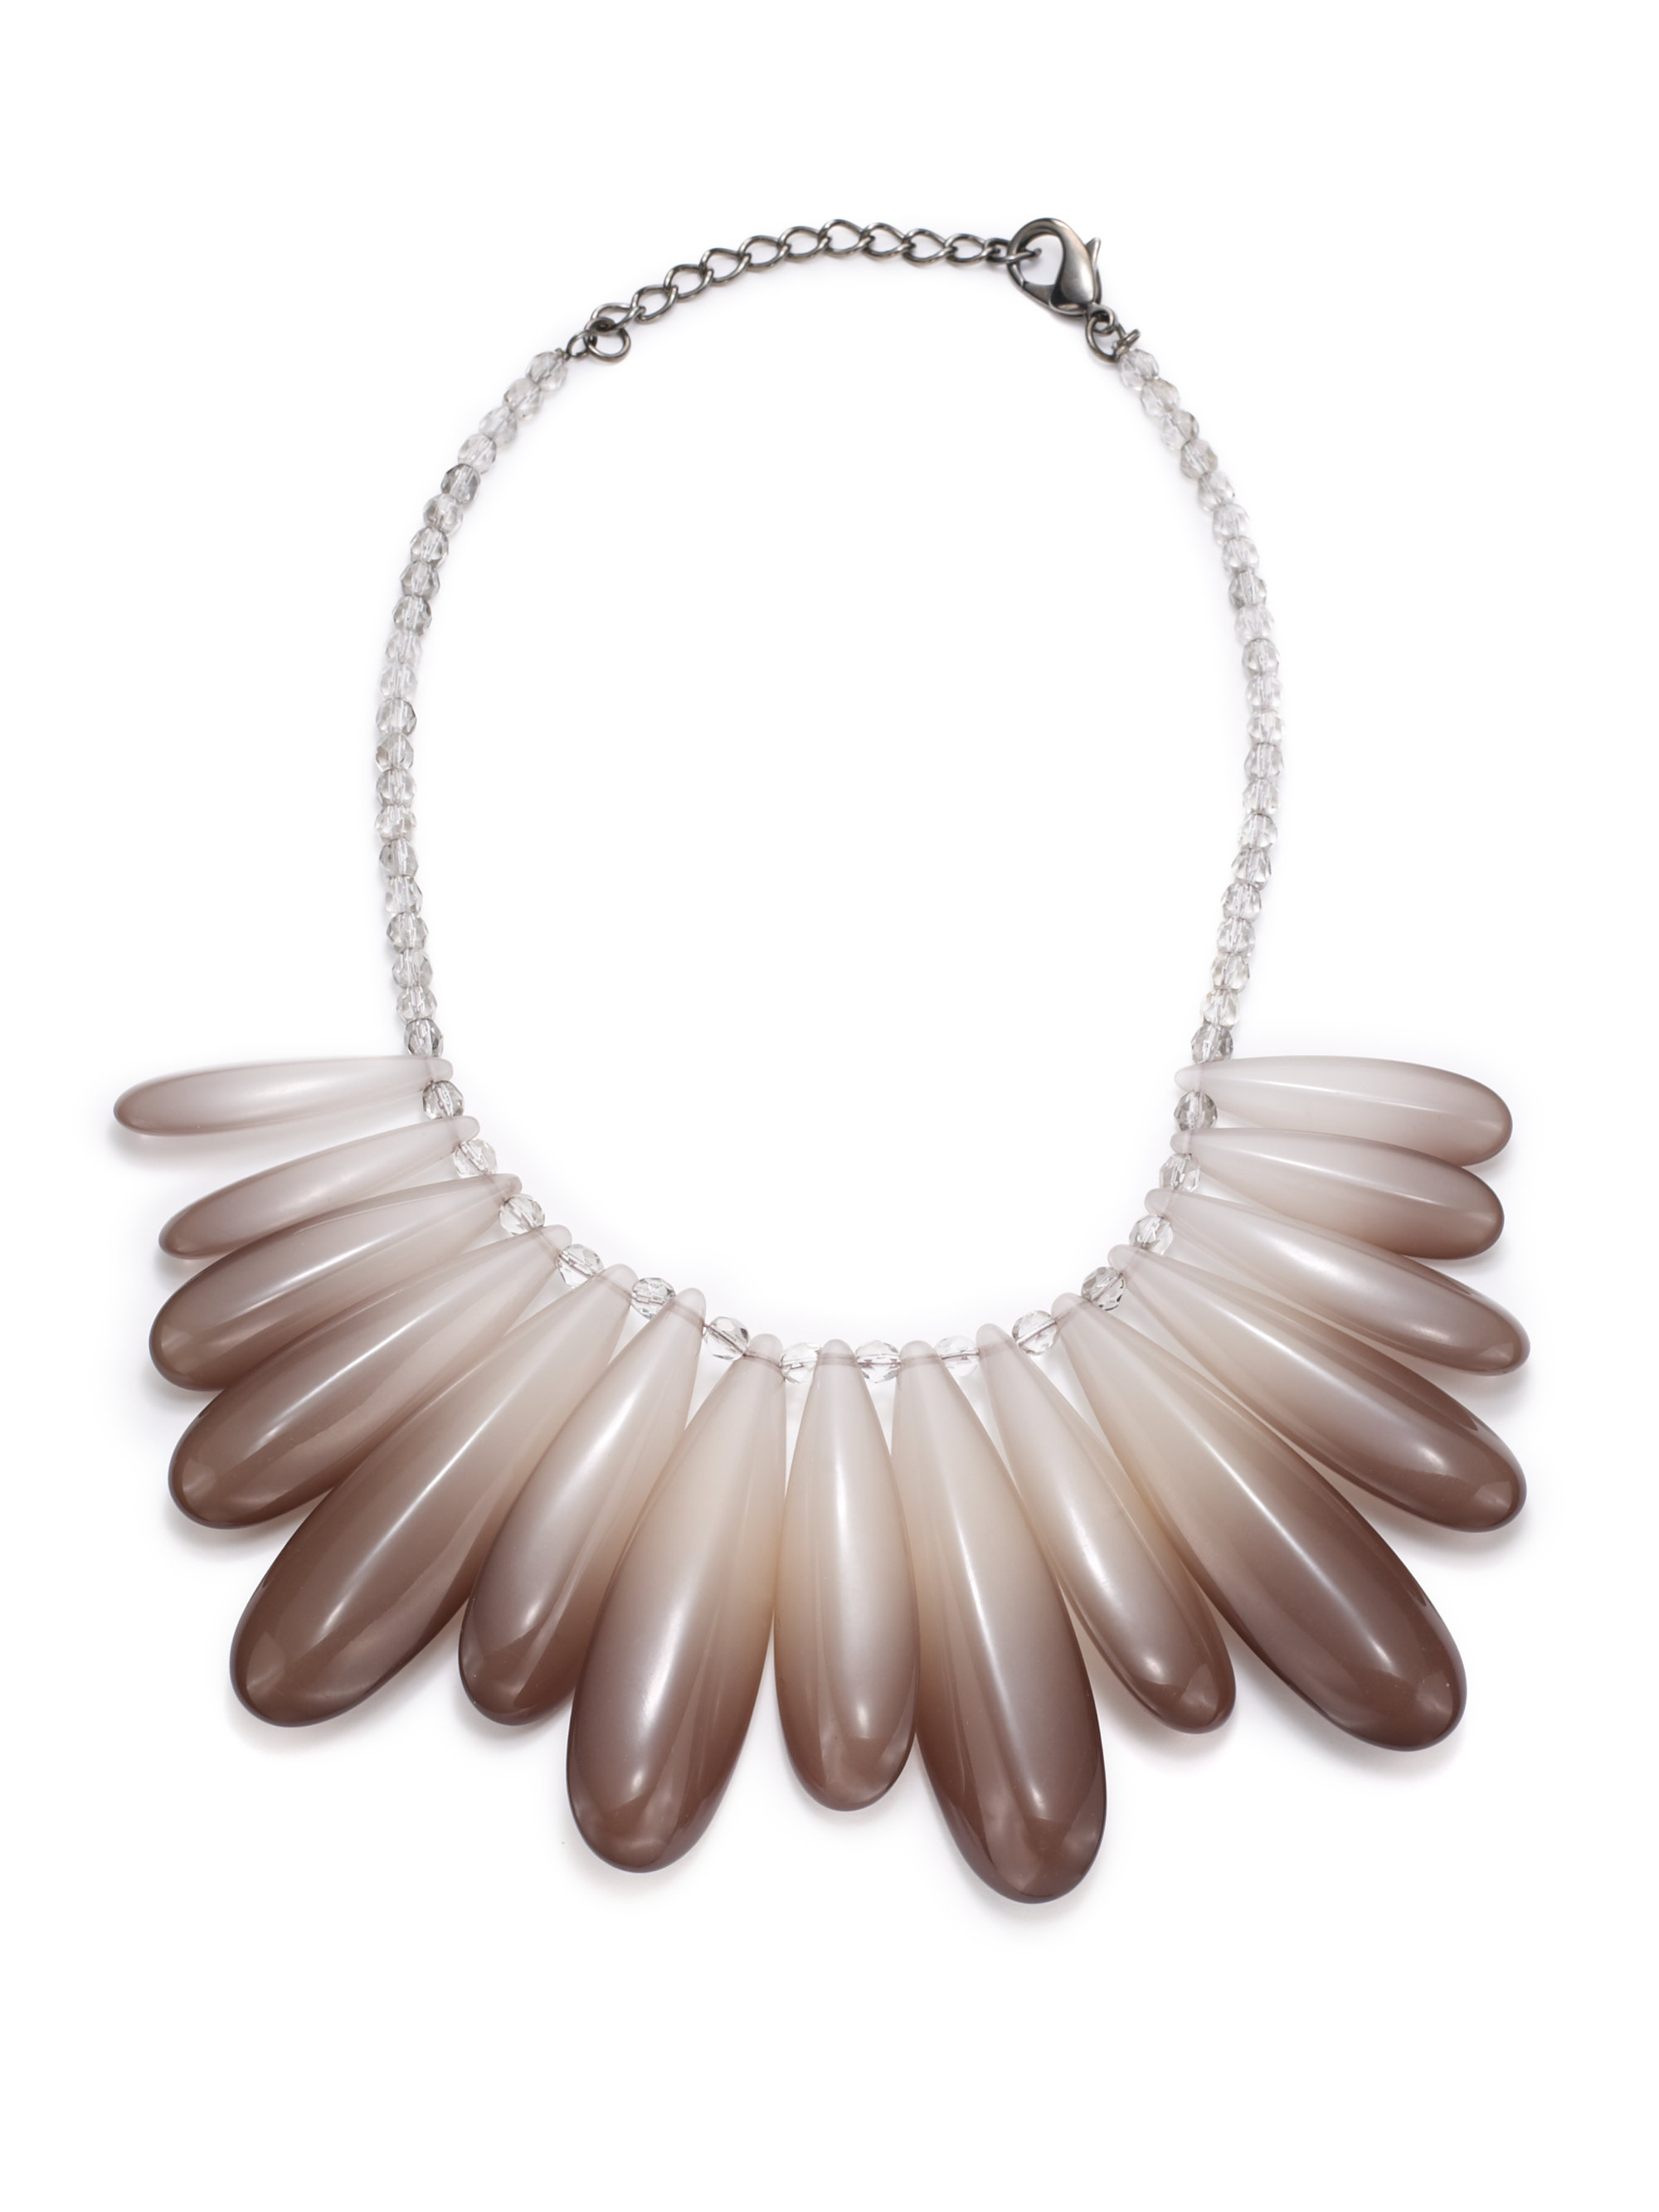 pono ombr 233 teardrop necklace in brown lyst